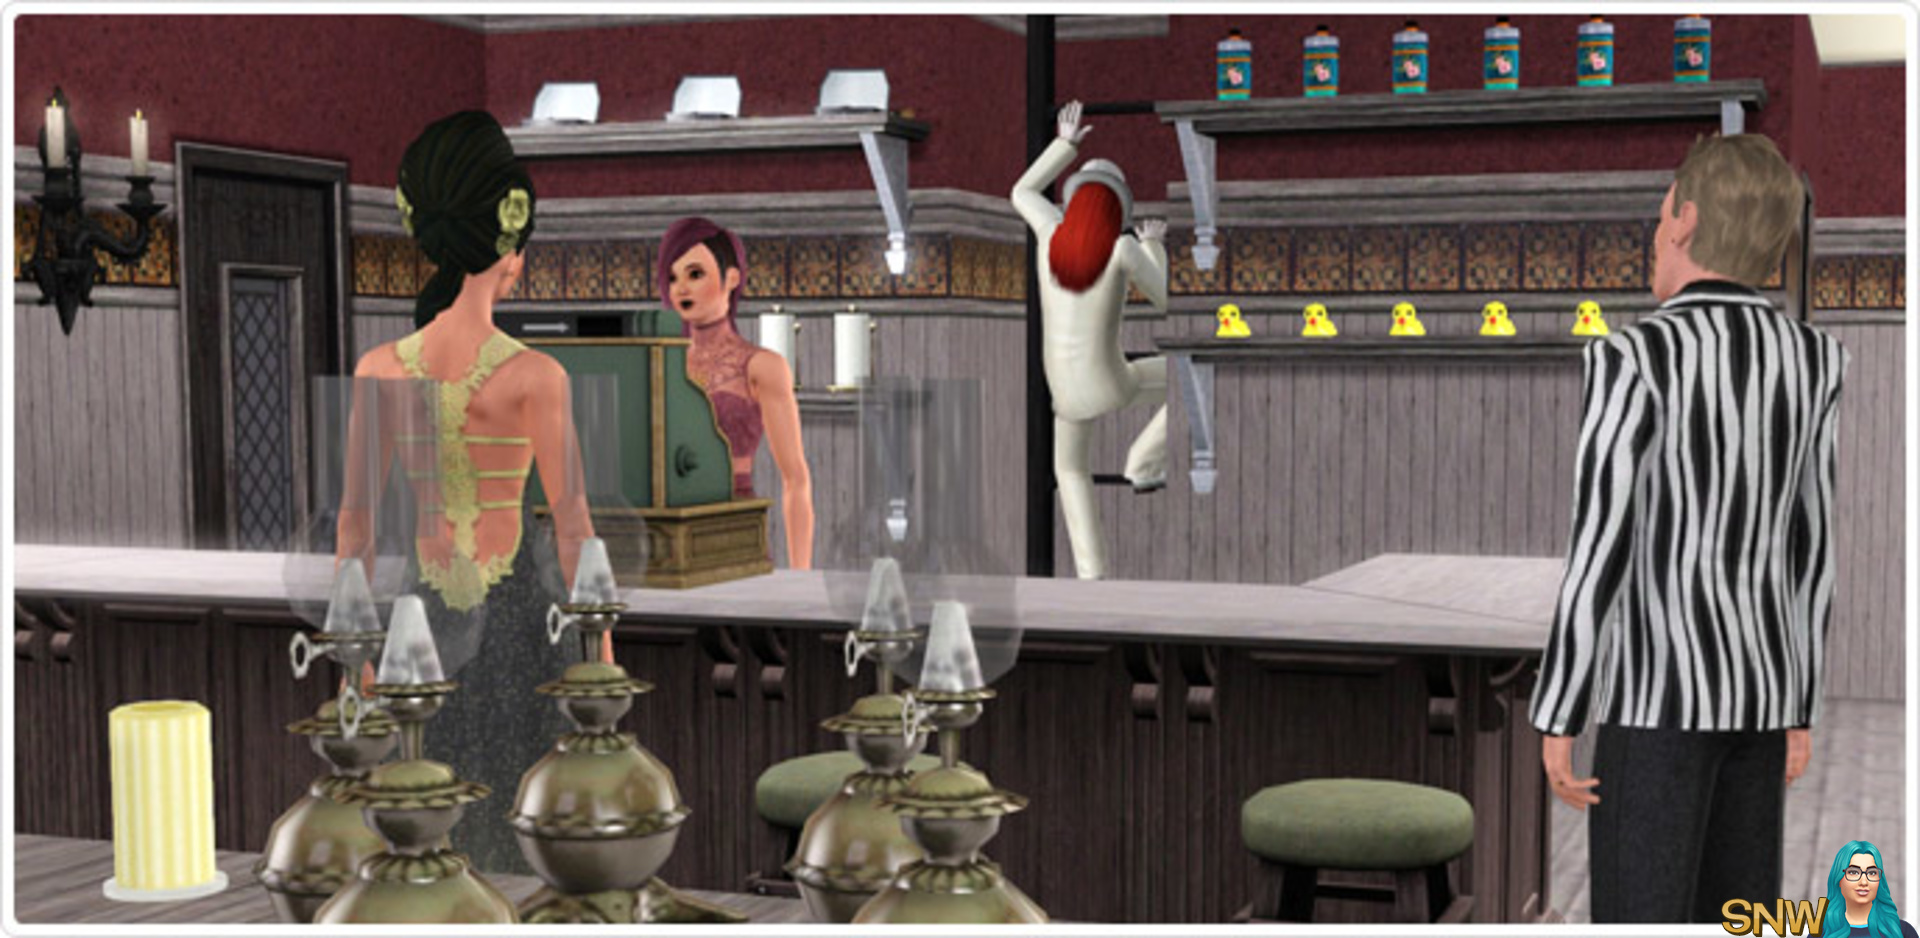 The sims sex rug nude picture